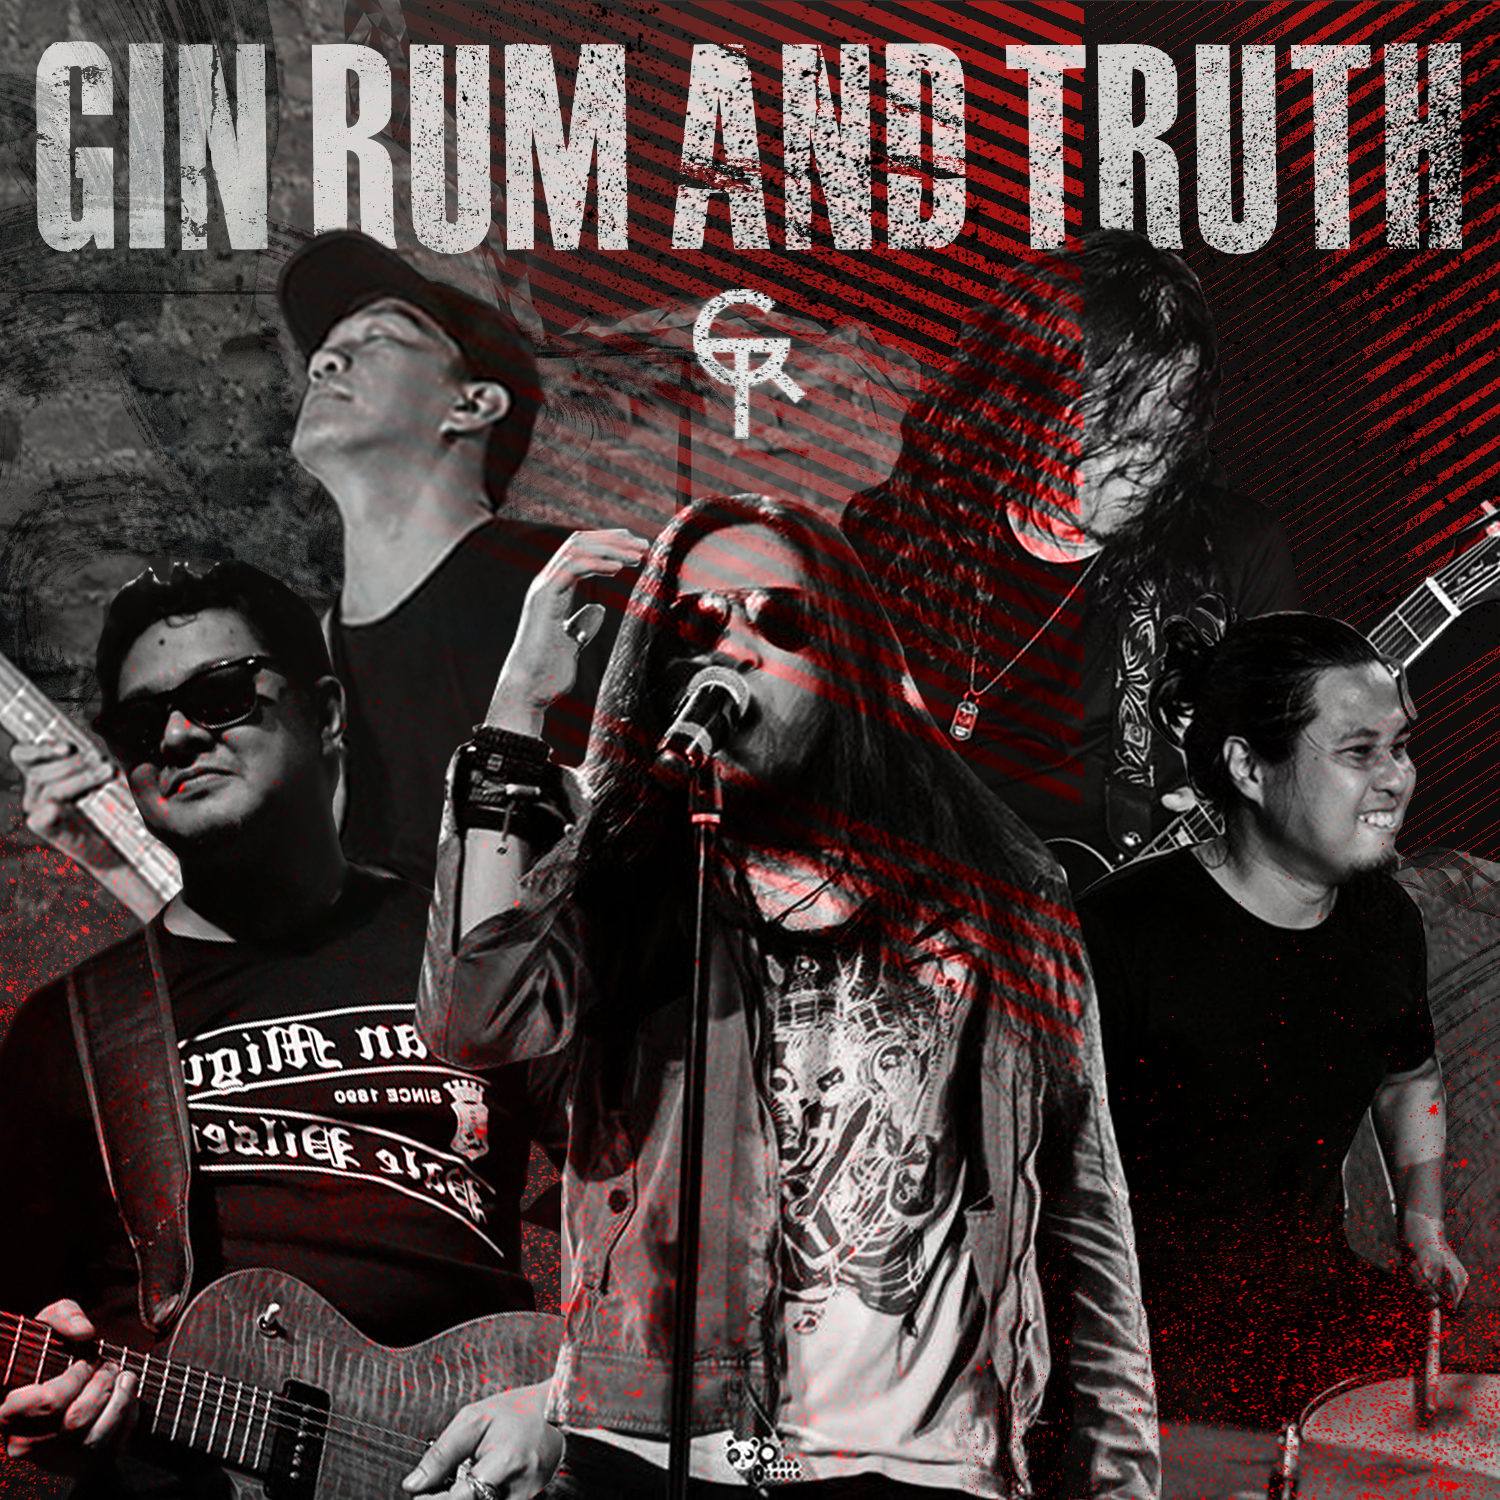 Gin Rum and Truth Promises Better Days with 'Kalayaan'